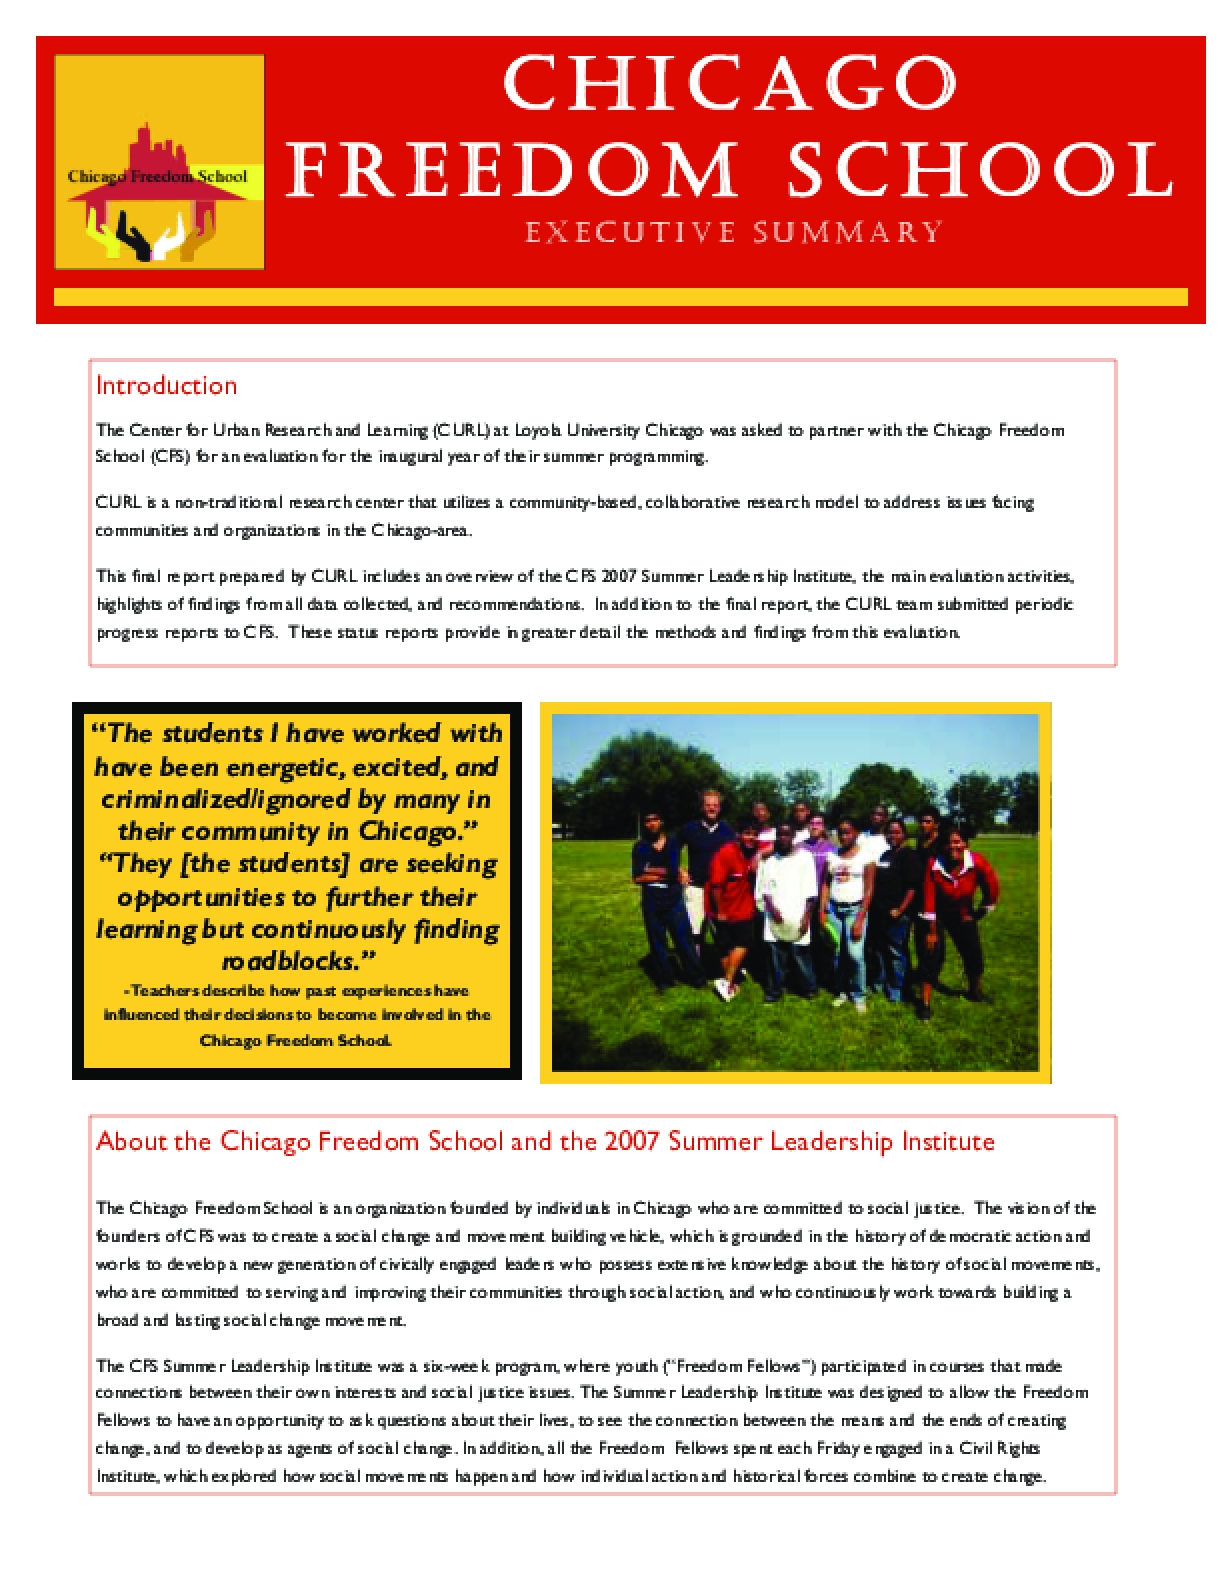 Chicago Freedom School (Executive Summary)